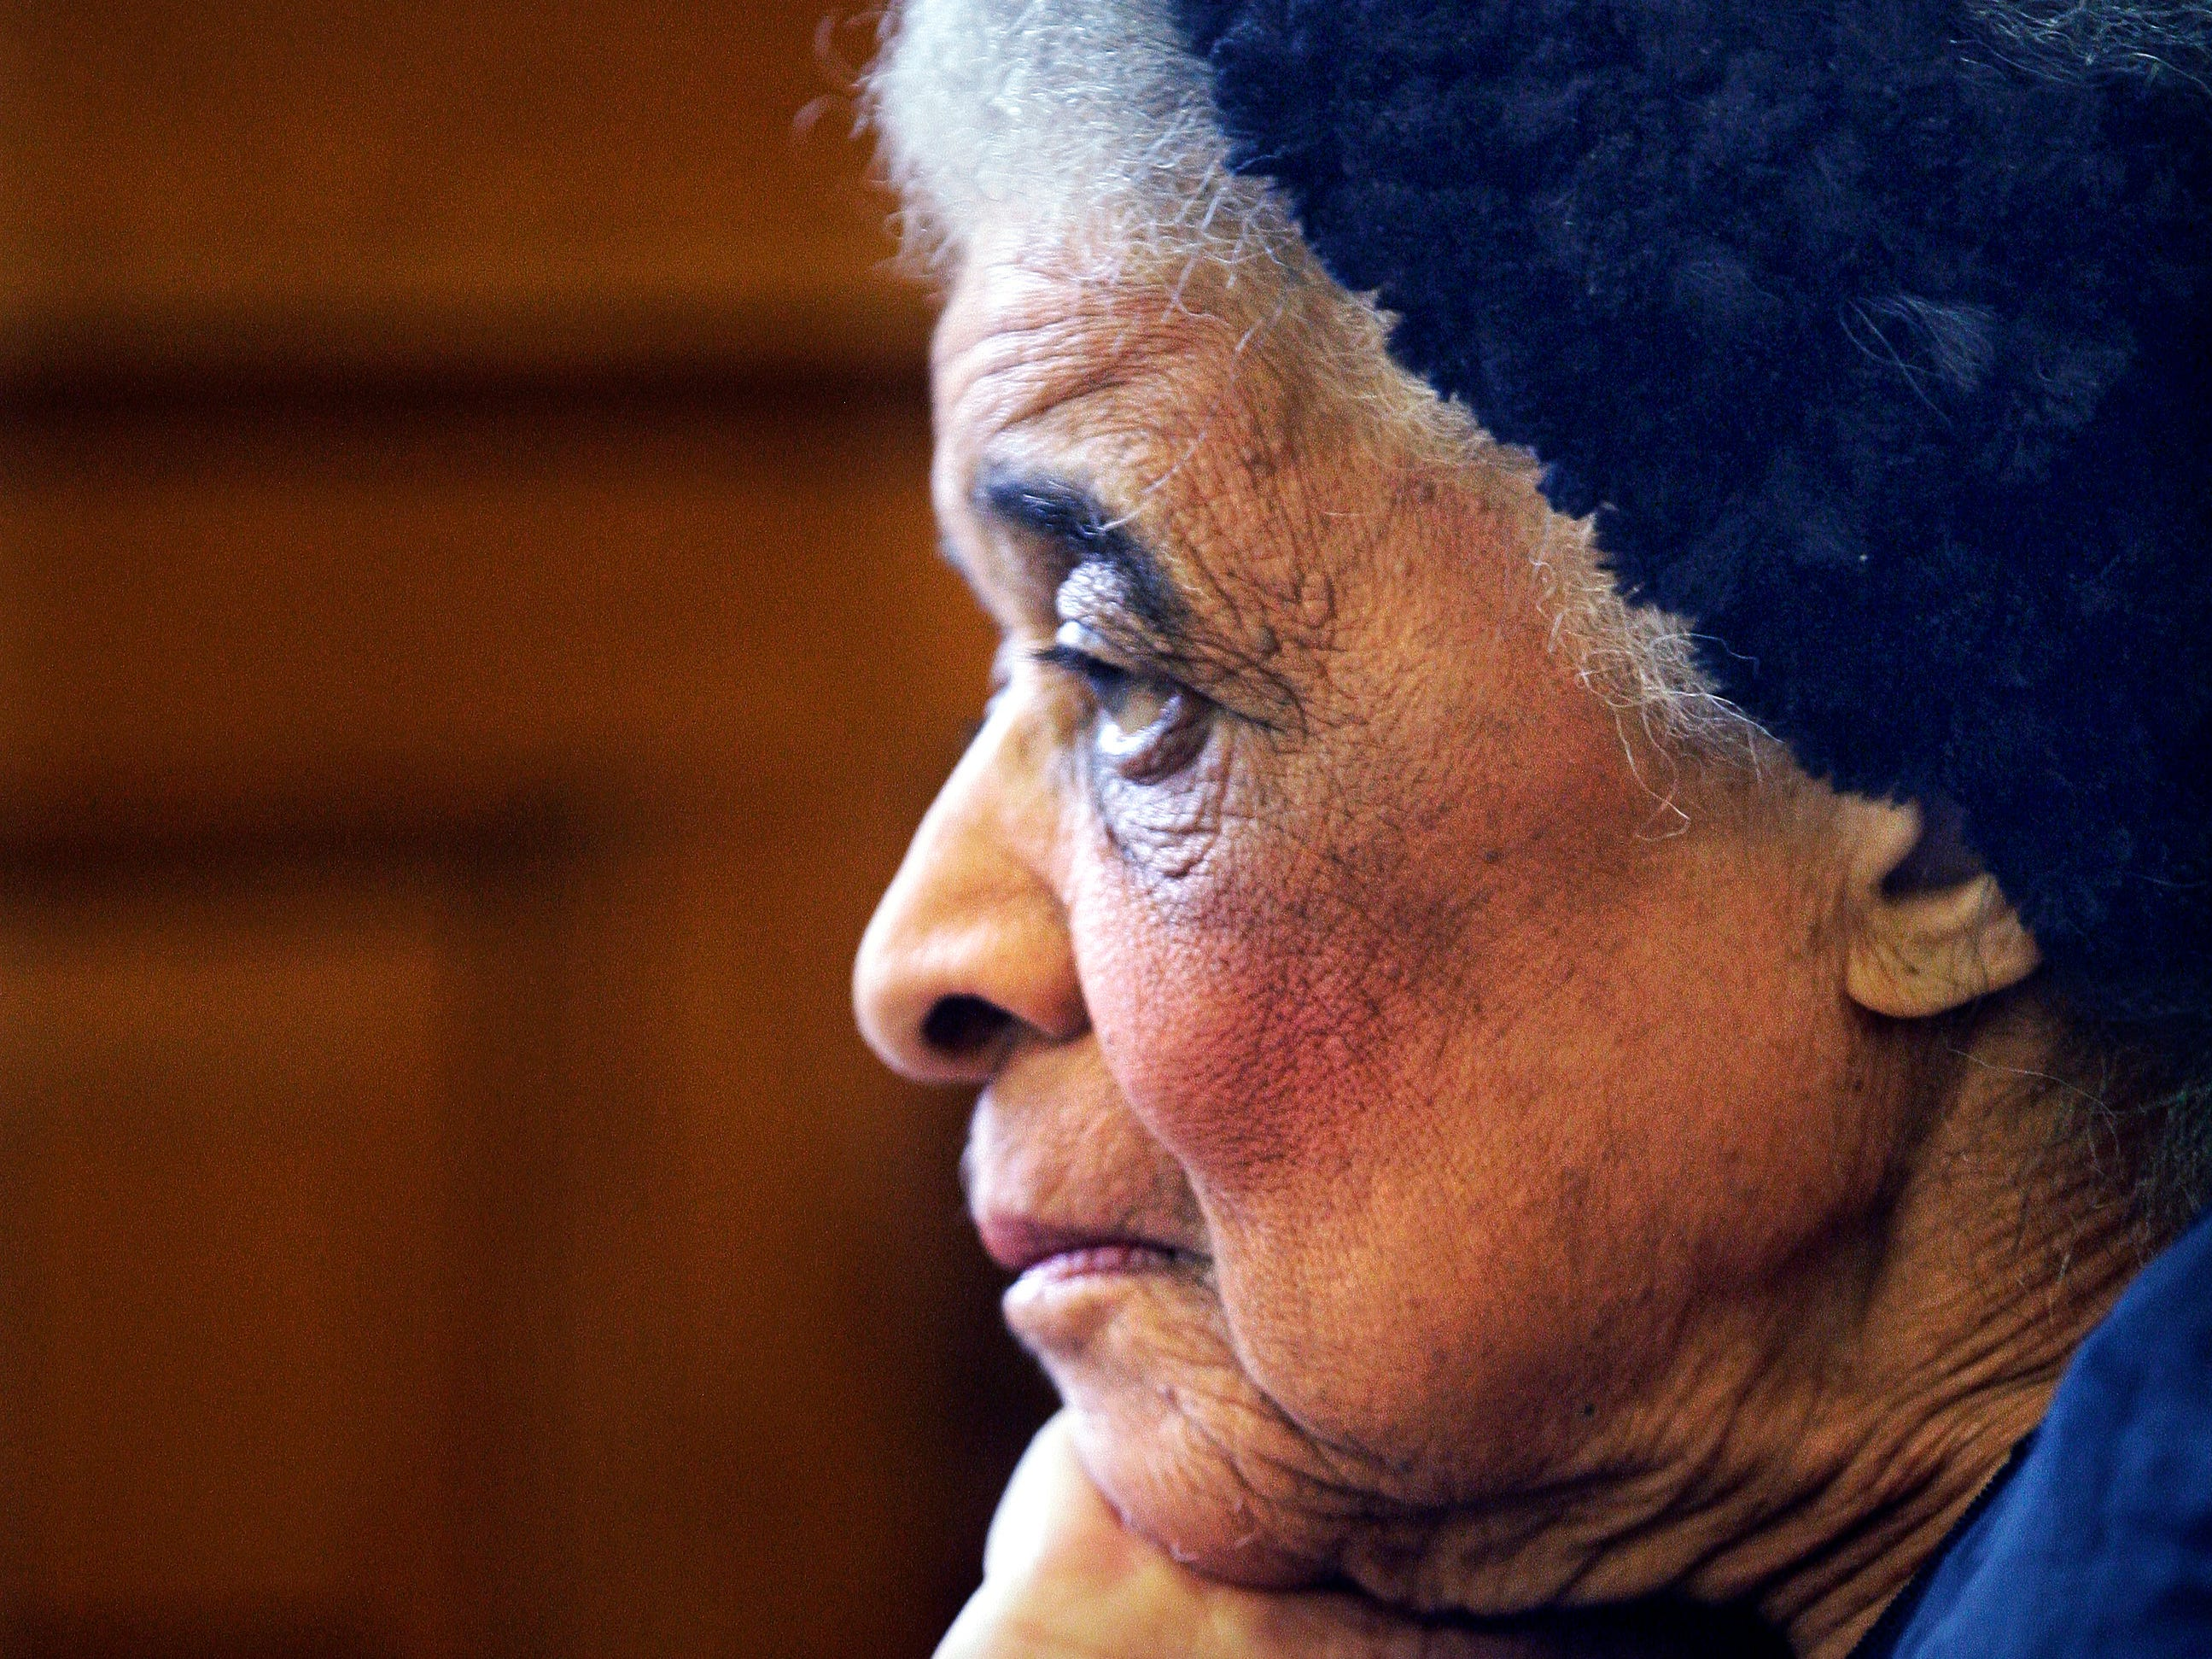 Vel Phillips, 90, was being honored at the Common Council meeting at  Milwaukee City Hall in this March 4 2014,  Journal Sentinel file photo for her many years as a civil rights advocate. Phillips paved the way as  the first woman and first African American woman in the Milwaukee Common Council. She died in 2018.